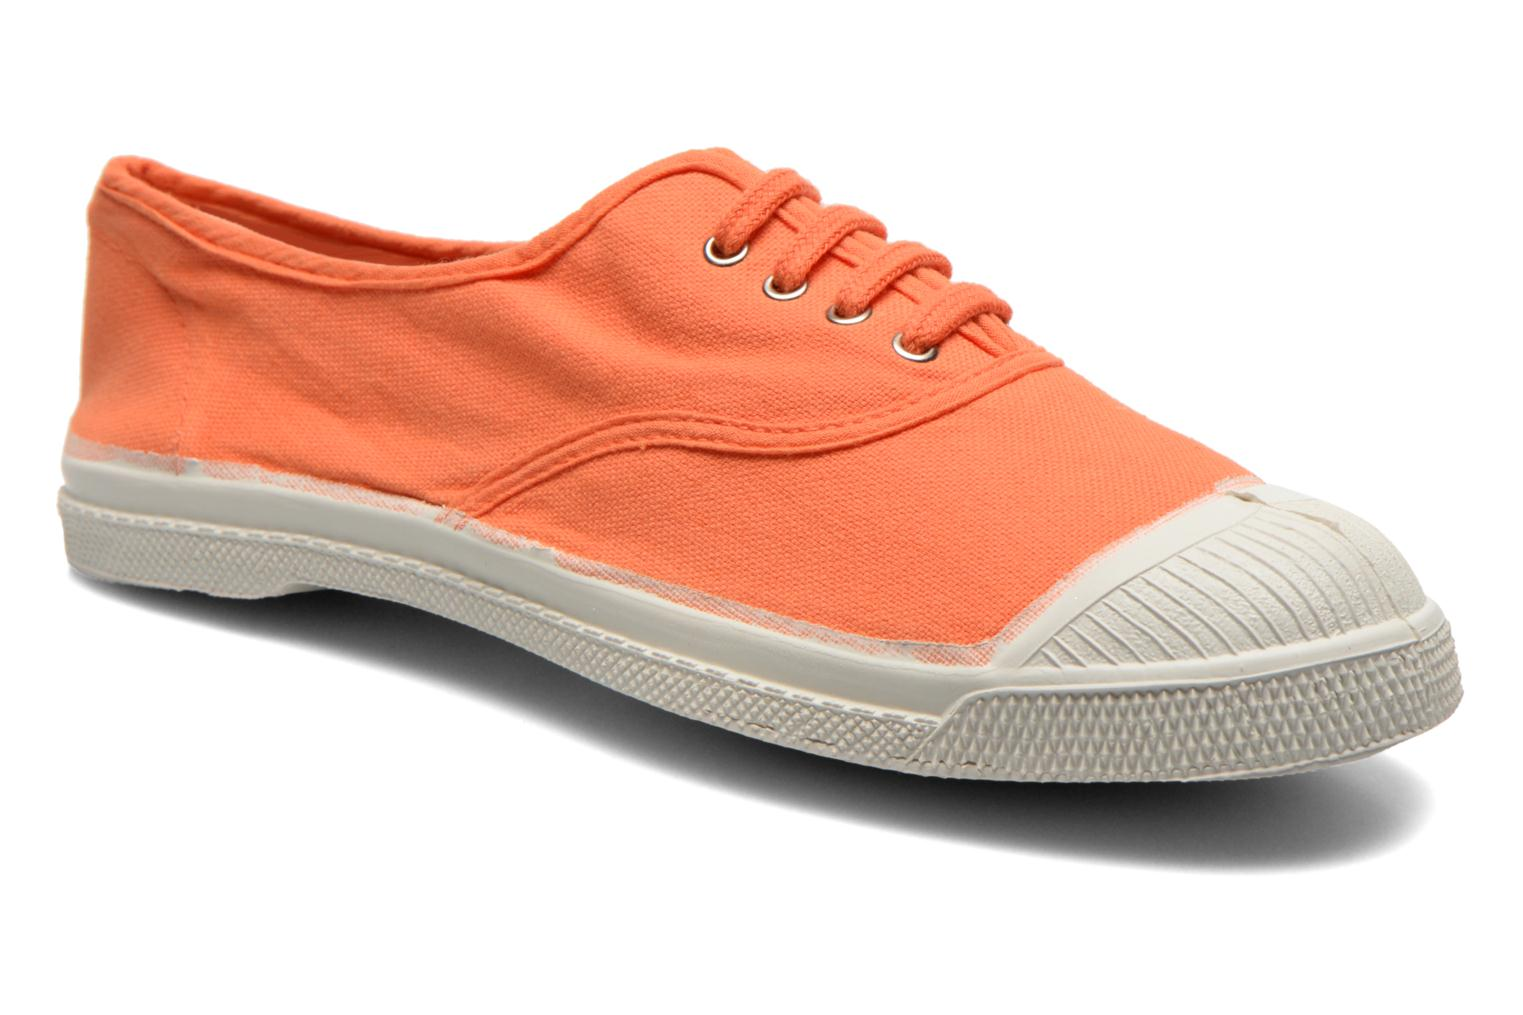 Bensimon Tennis Lacets (Orange) - Baskets en Más cómodo Remise de marque